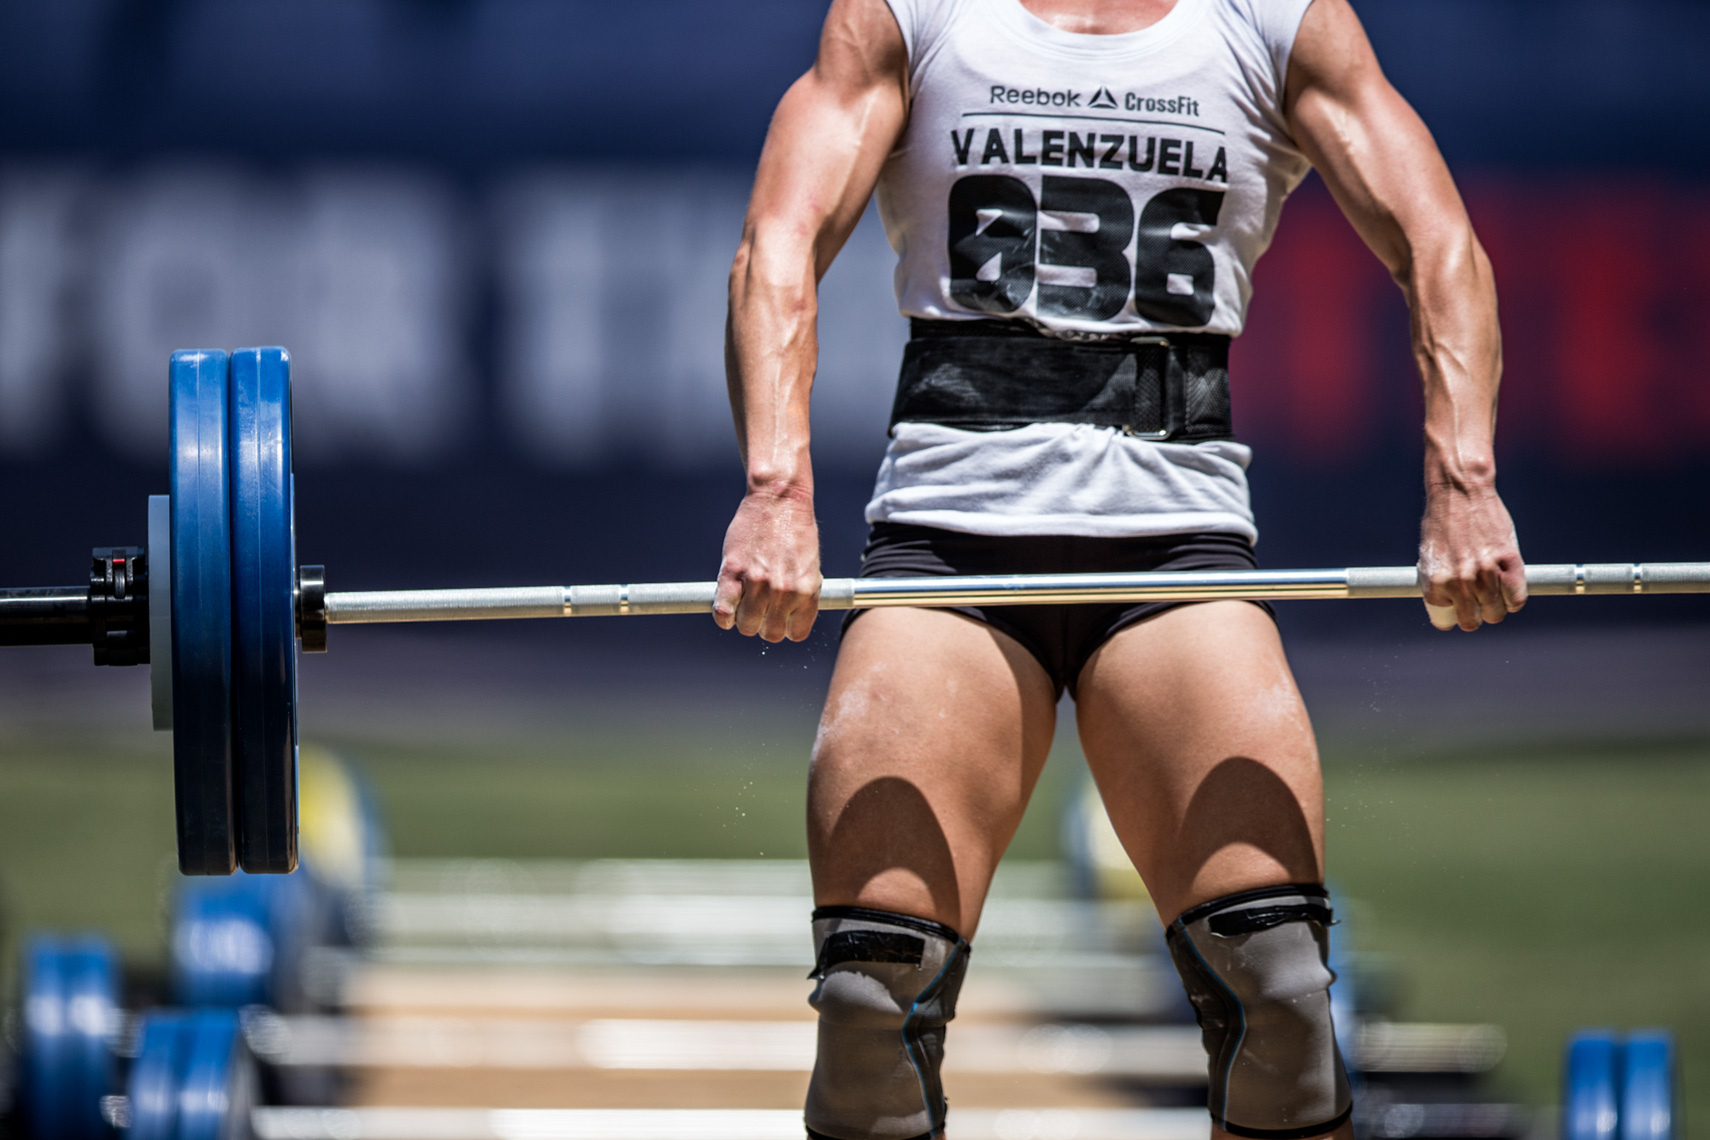 Los Angeles Sports Photography, Michael Brian, athlete, female, Crossfit, Lindsey Valenzuela, Clean and Jerk Ladder, mid pull, Reebok Crossfit Games athlete, StubHub Center